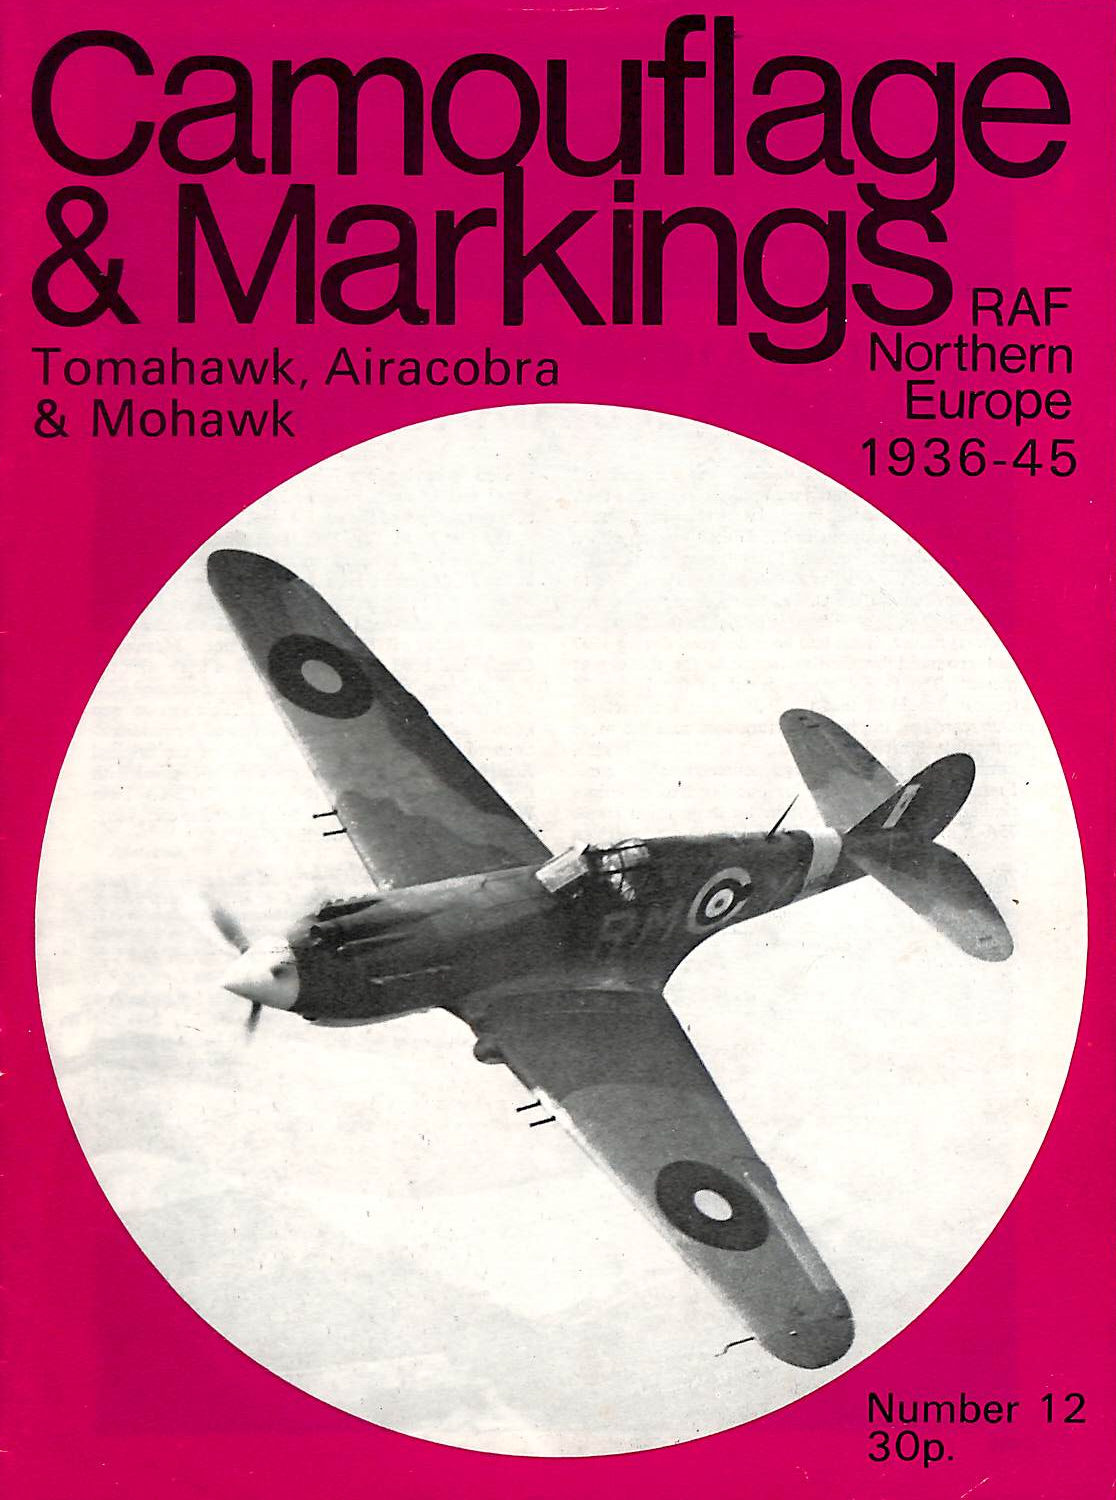 Image for P-40 Tomahawk, P-39 Airacobra & Mohawk- Camouflage & Markings, Raf Northern Europe 1936-45 (Camouflage & Markings, Raf Northern Europe 1936-45)